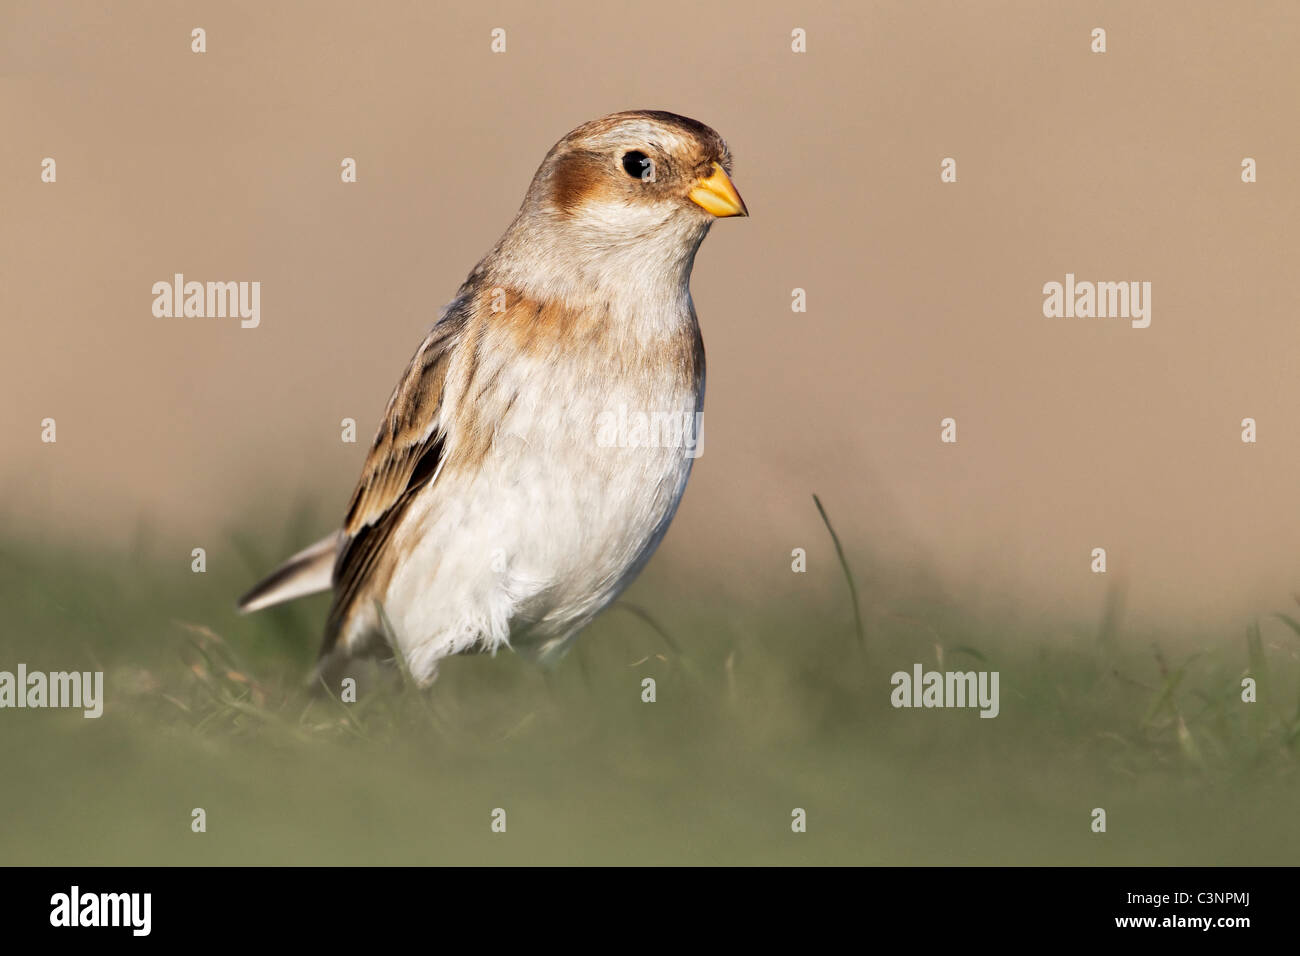 A winter plumage Snow Bunting stood in grass - Stock Image